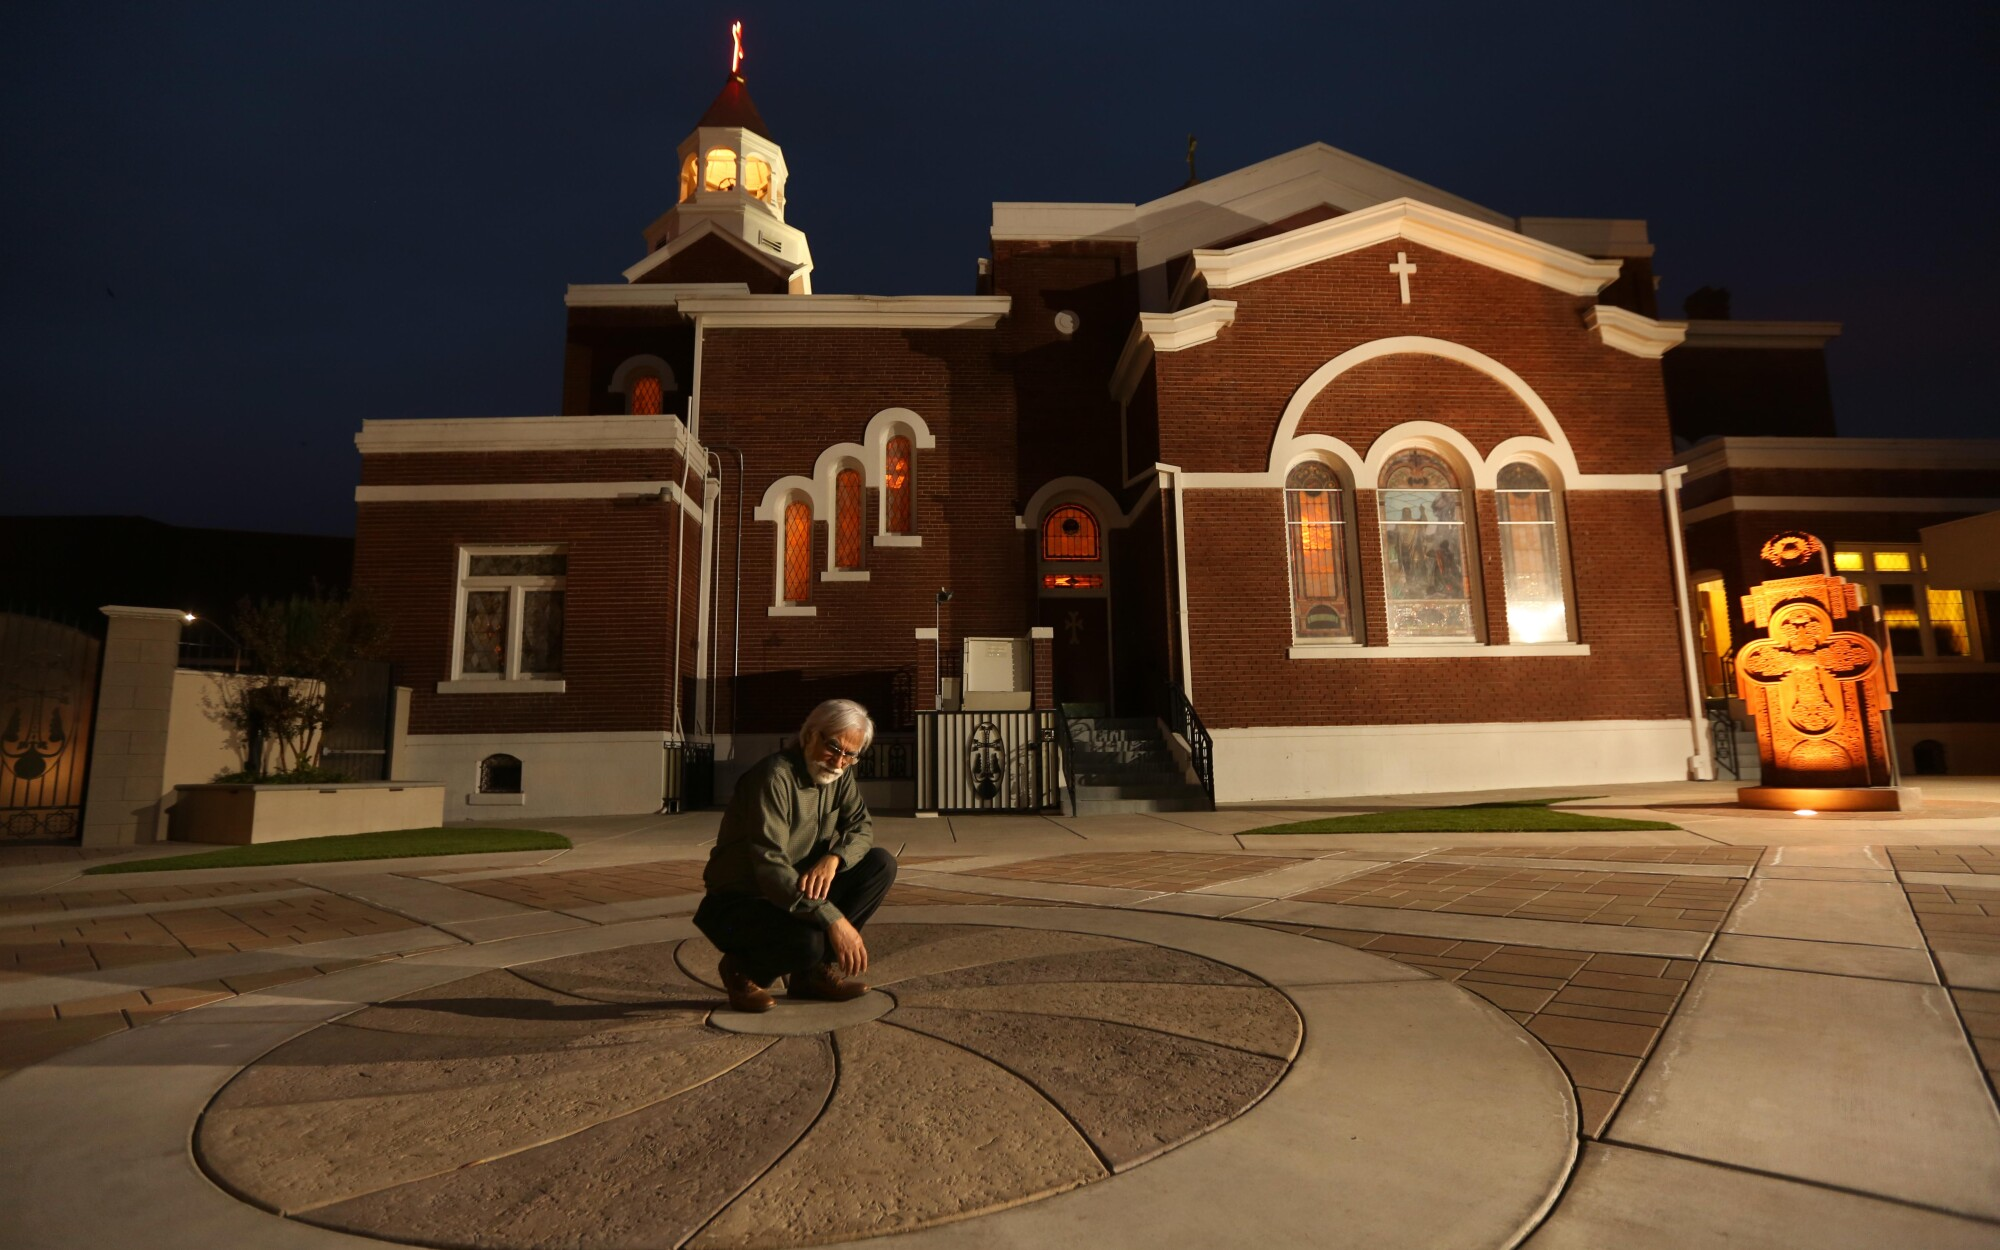 Varoujan Der Simonian kneels in the center of a concrete design outside a church